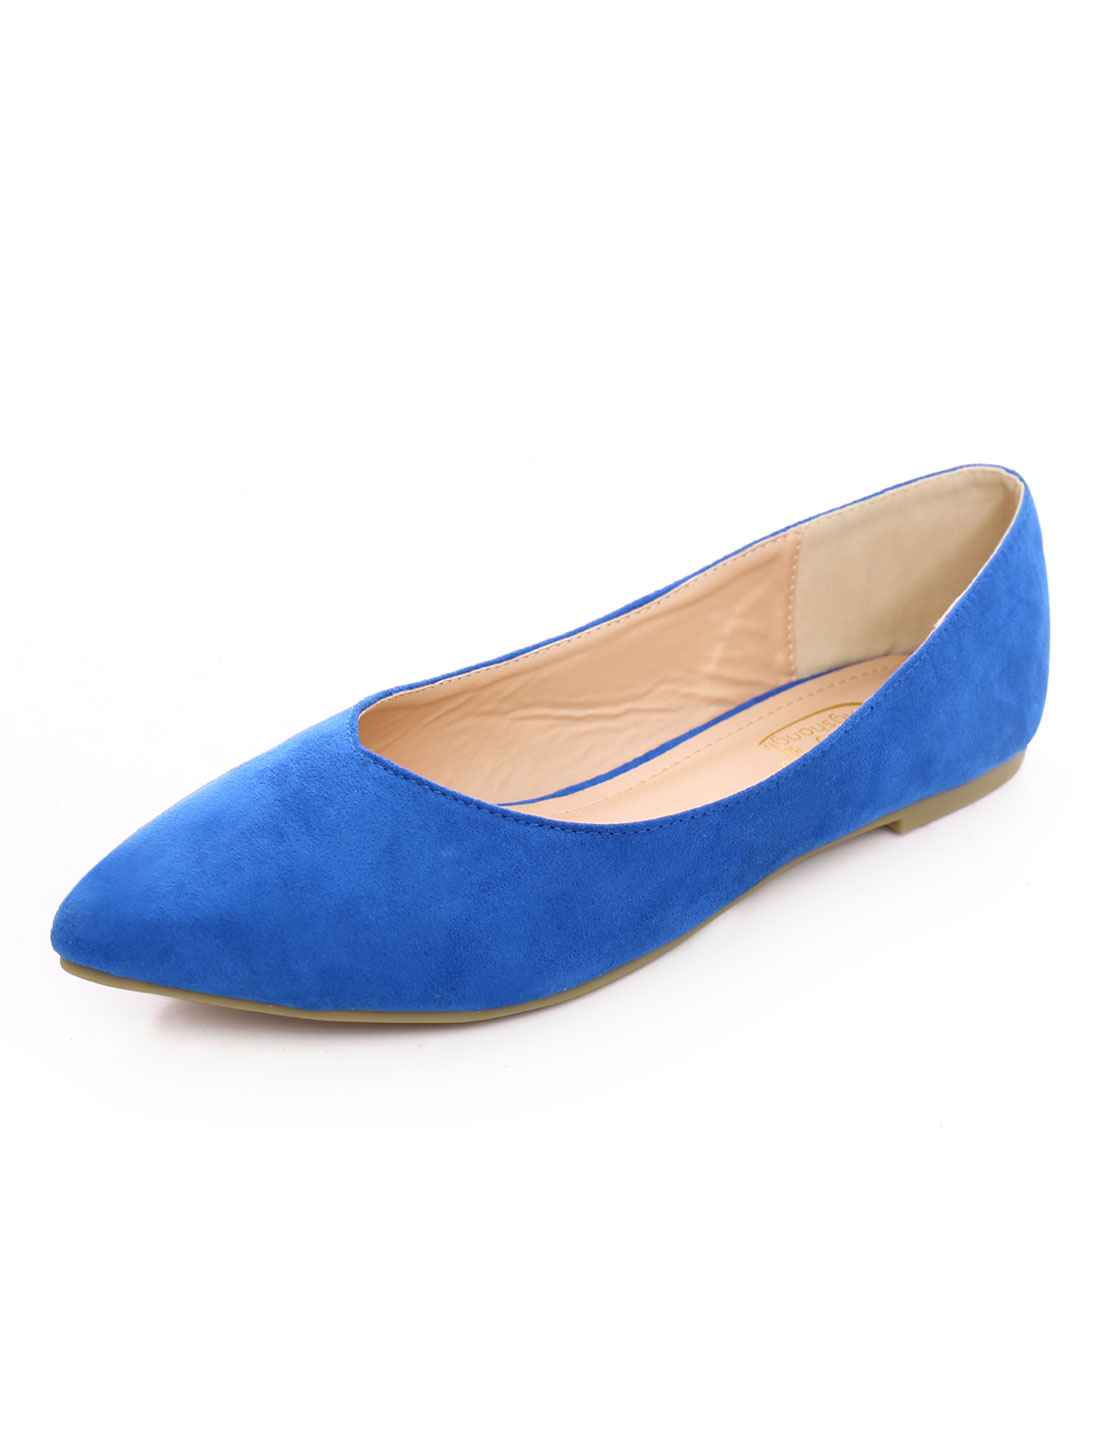 Woman Faux Suede V-Cut Vamp Casual Pointed Slip On Flat Shoes Blue US 8.5